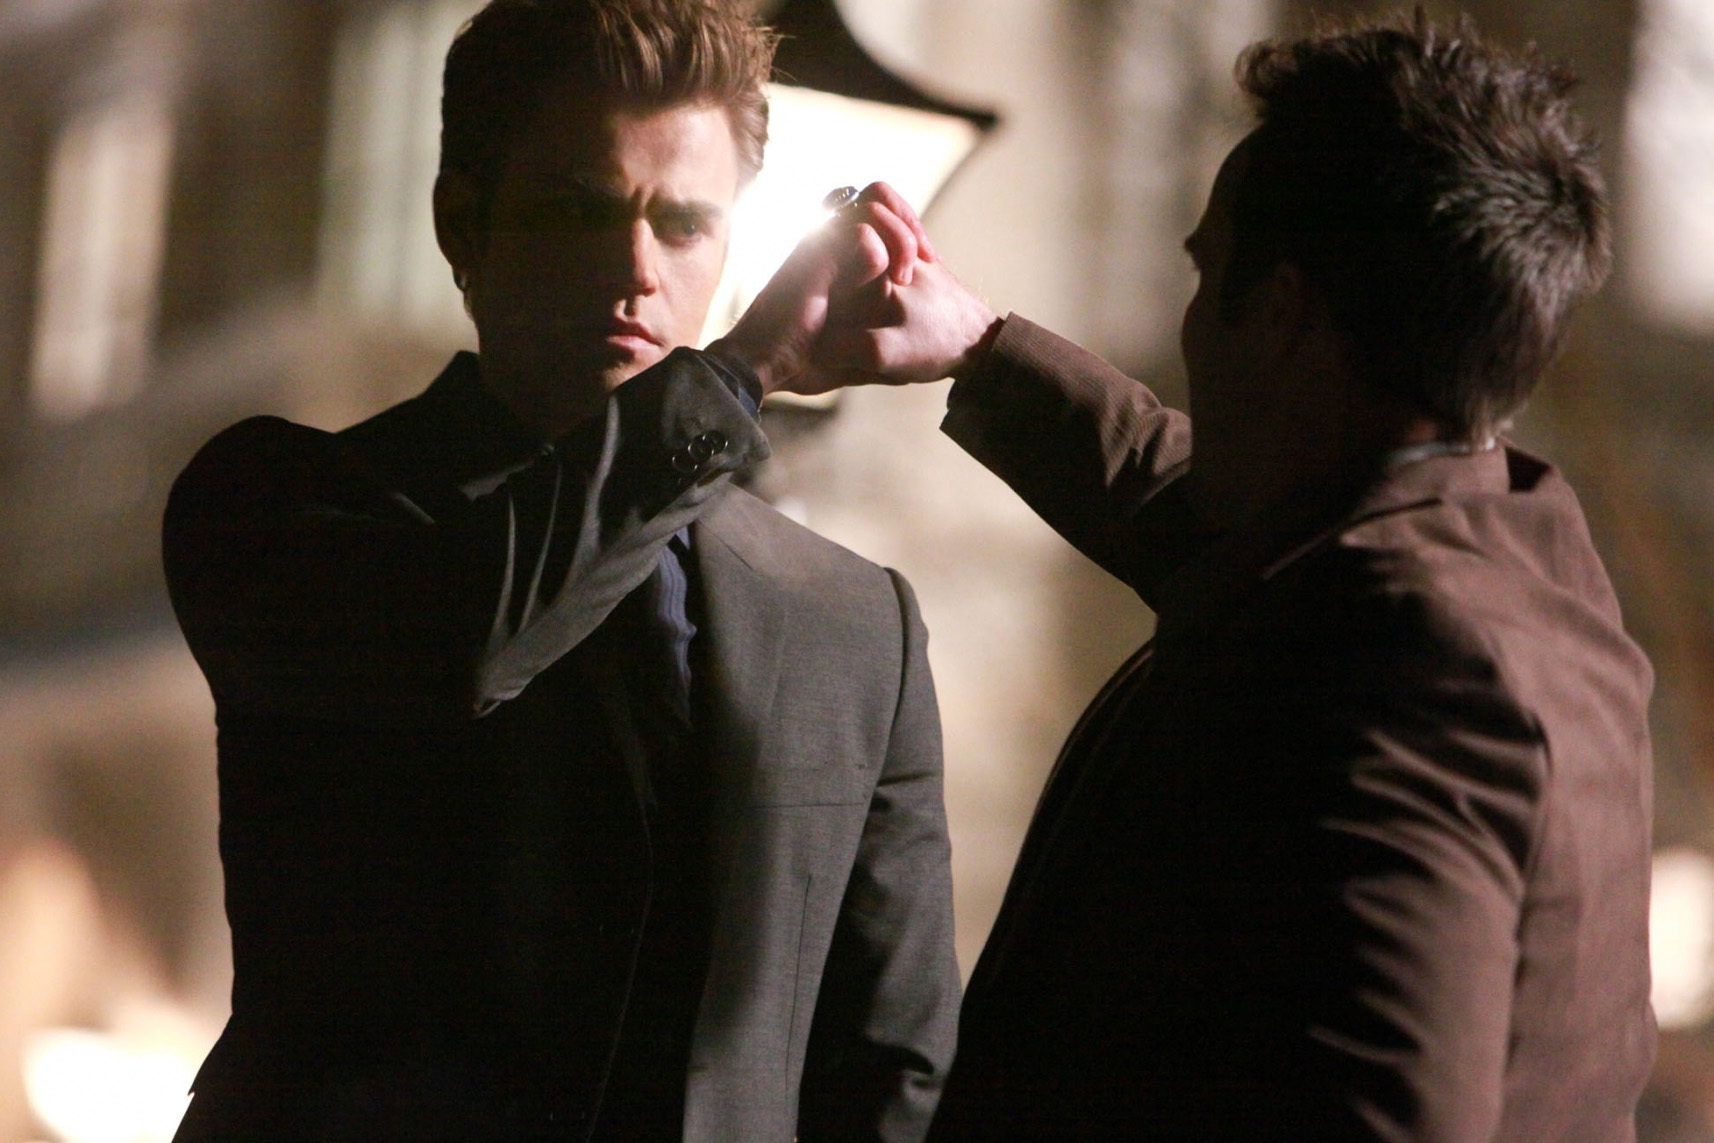 http://images2.fanpop.com/image/photos/11500000/1x18-Under-control-the-vampire-diaries-tv-show-11506044-1714-1143.jpg